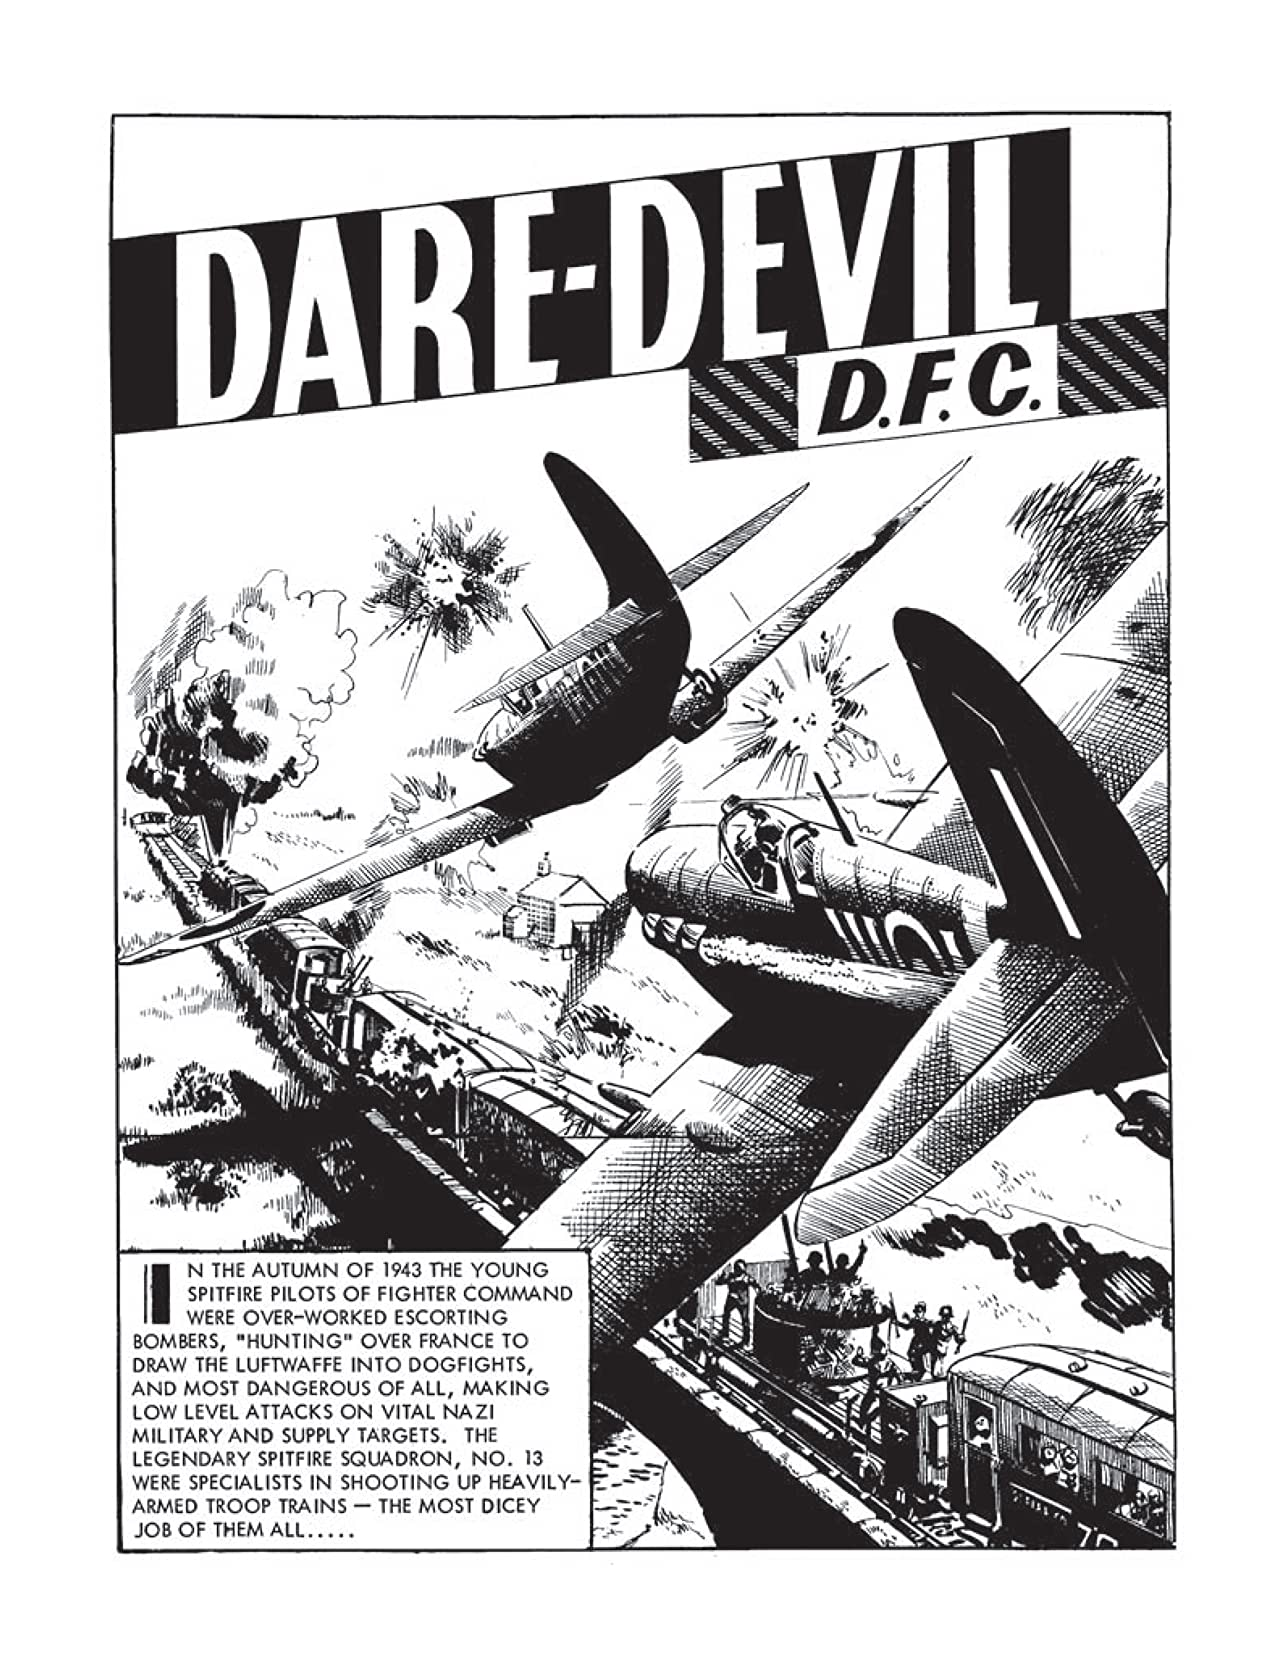 Commando #4416: Daredevil D.F.C.